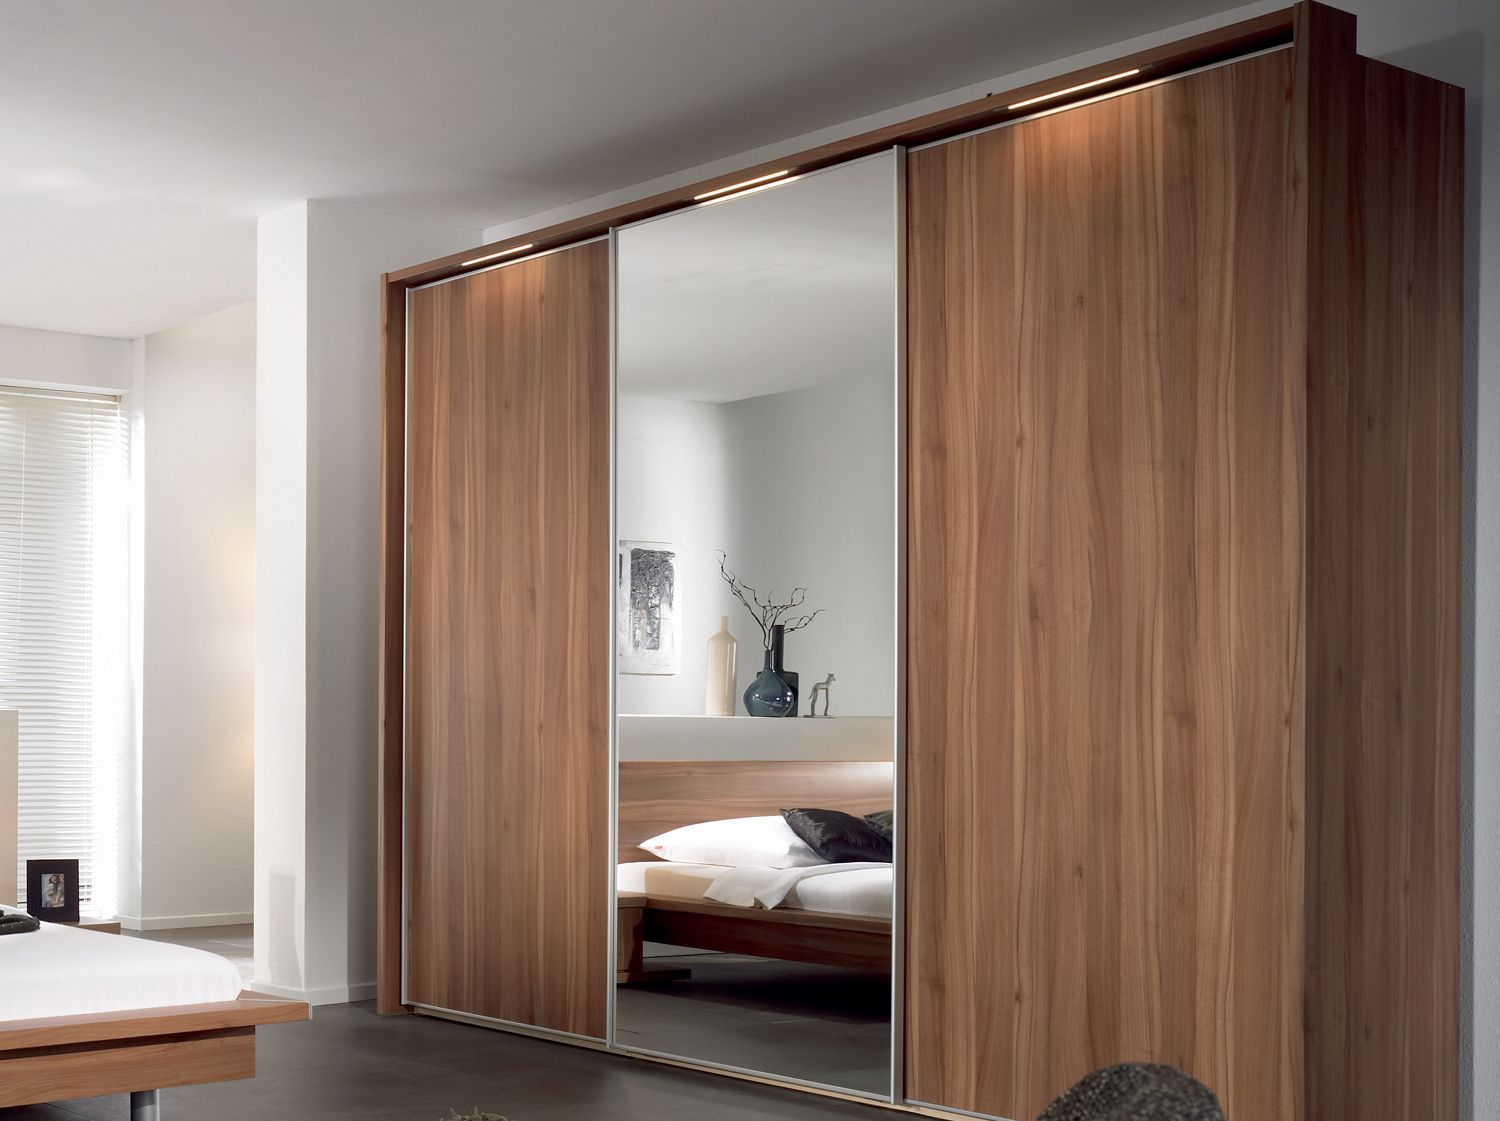 find this pin and more on wardrobe ideas - Designs For Wardrobes In Bedrooms